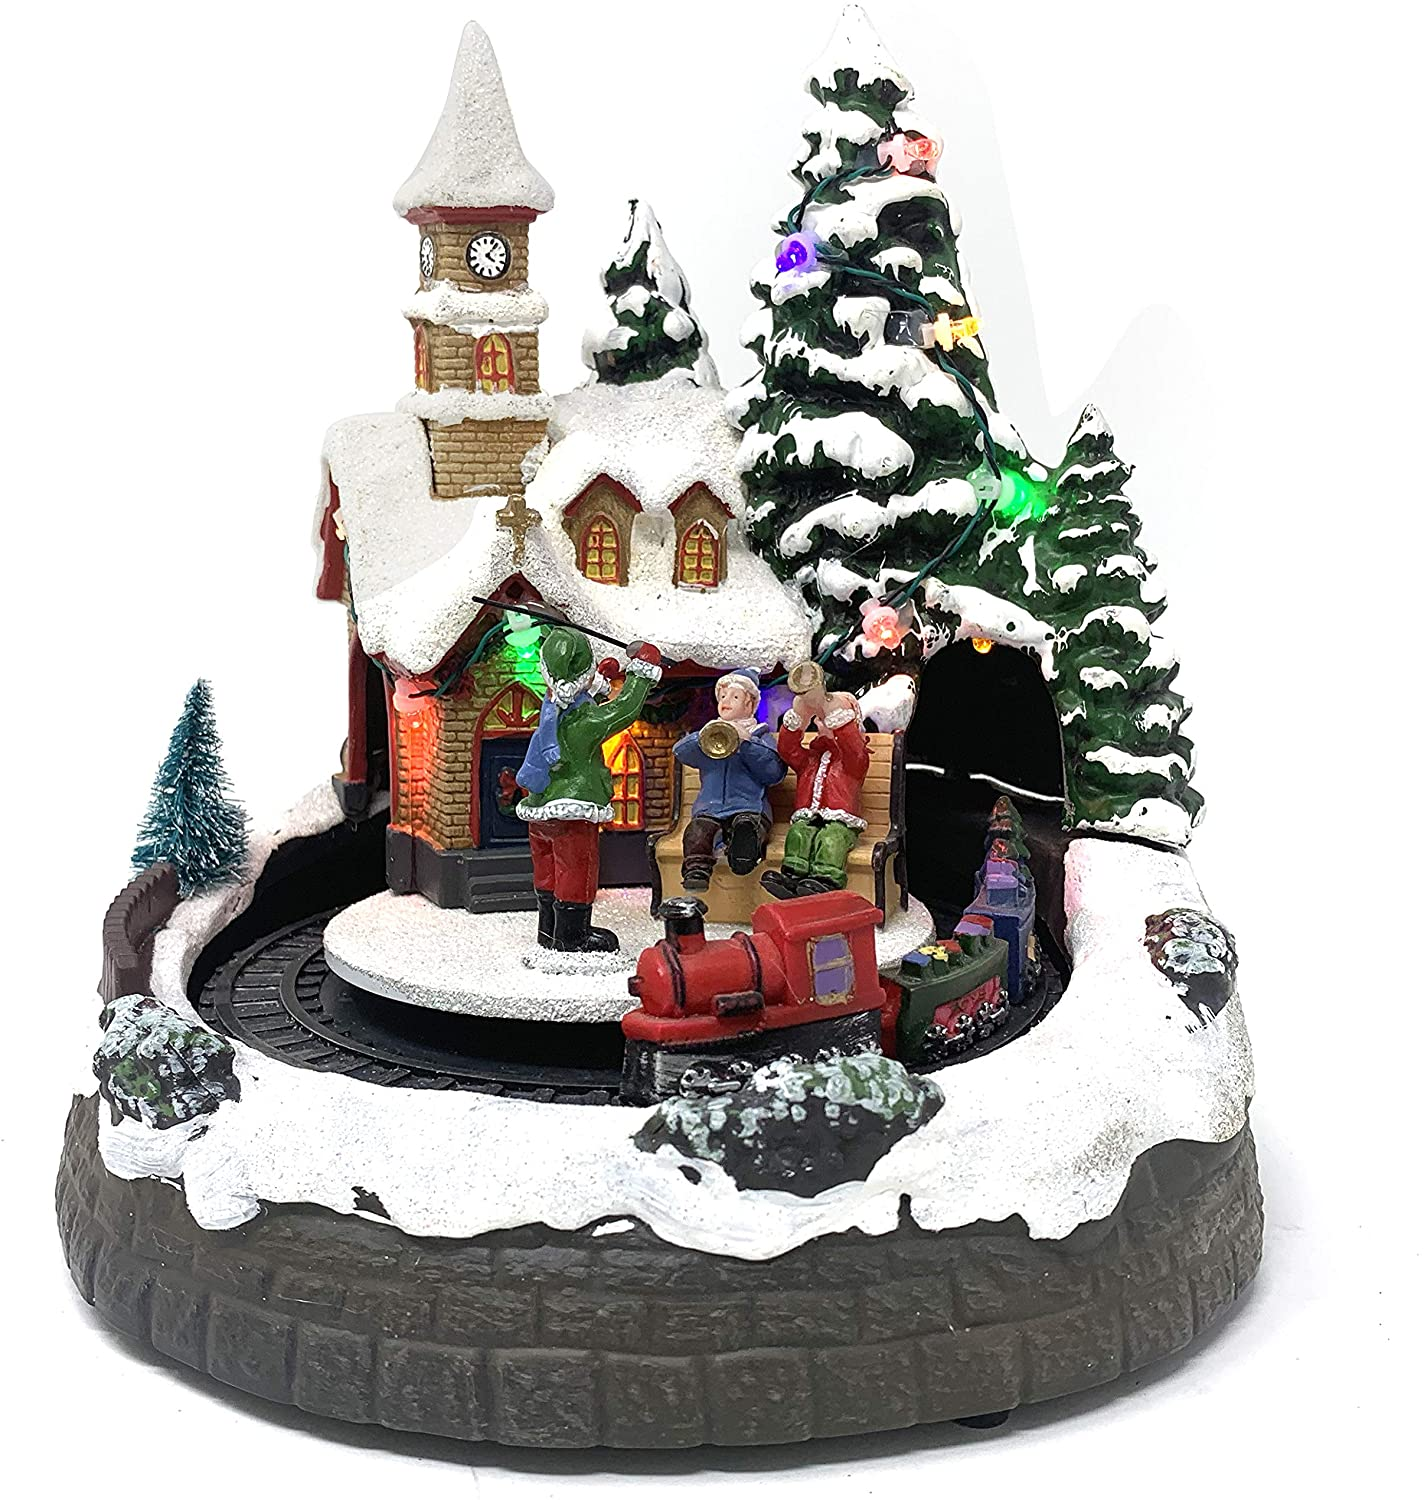 allgala Crafted Polyresin Christmas House Collectable Décor Building House Figurine with USB and Battery Dual Power Source-Moving Train and Wind Players-XH93412